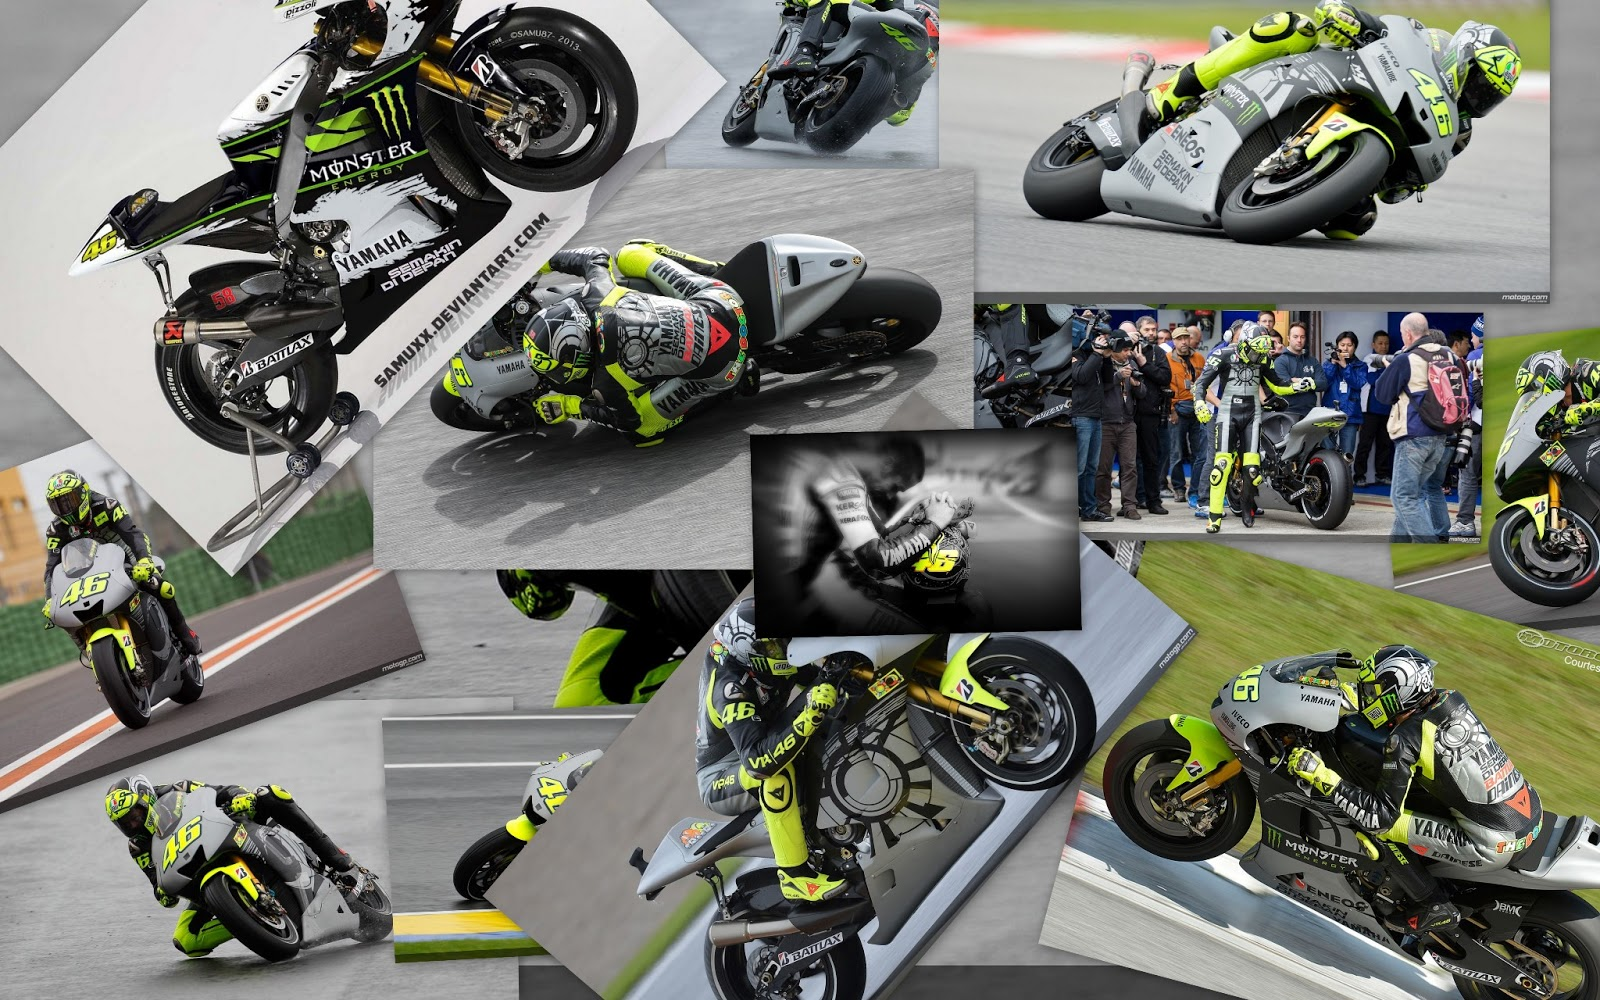 Valentino rossi motogp 2013 theme for windows 7 and 8 ouo themes valentino rossi wallpaper 2013 voltagebd Image collections